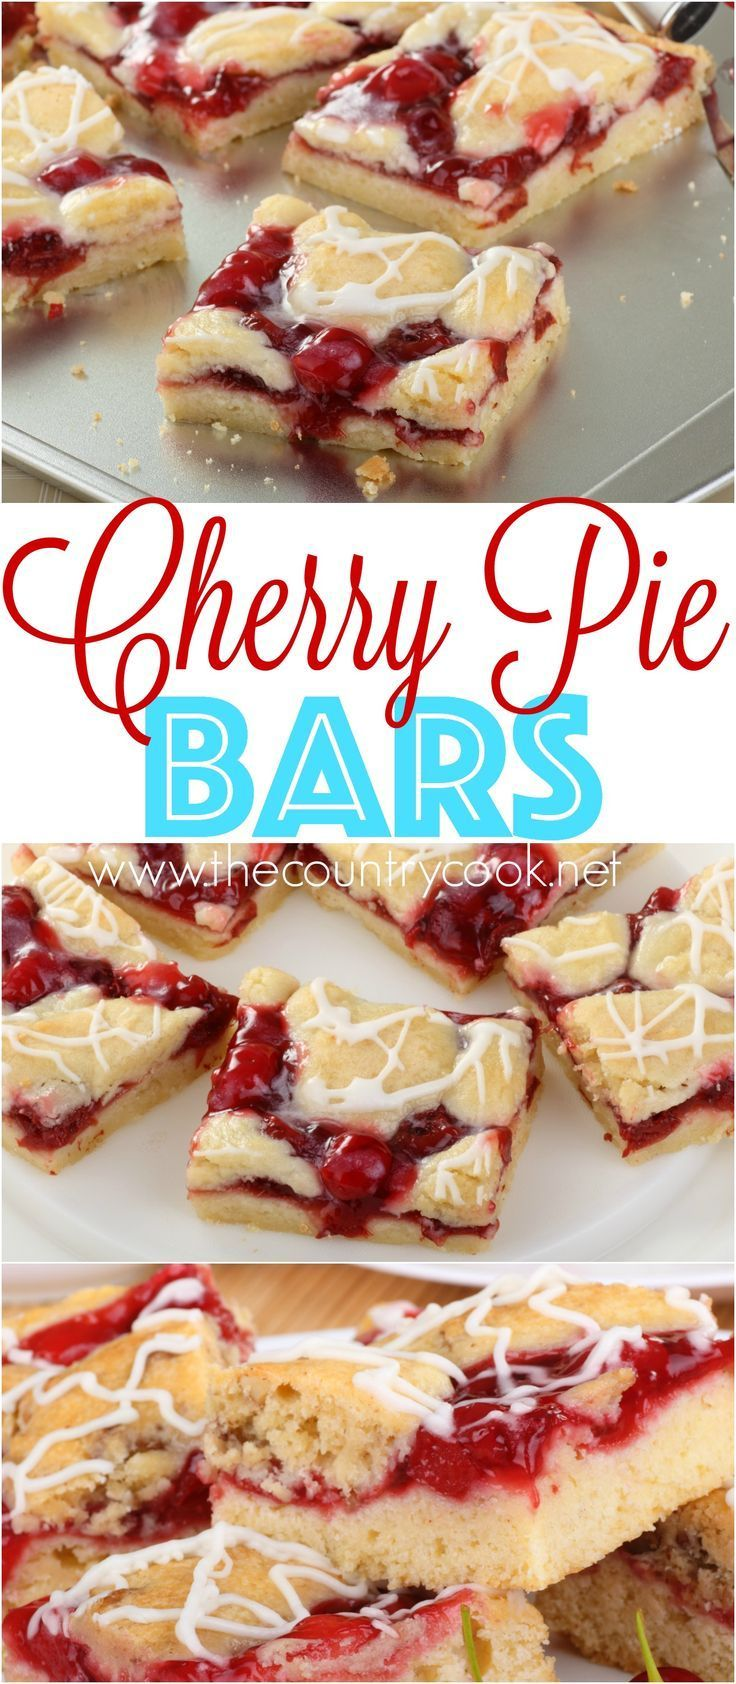 Cherry Pie Bars recipe from The Country Cook. A homemade recipe that is easy to make and serve. Everyone loves them! Switch out the pie filling to easily change up the recipe!